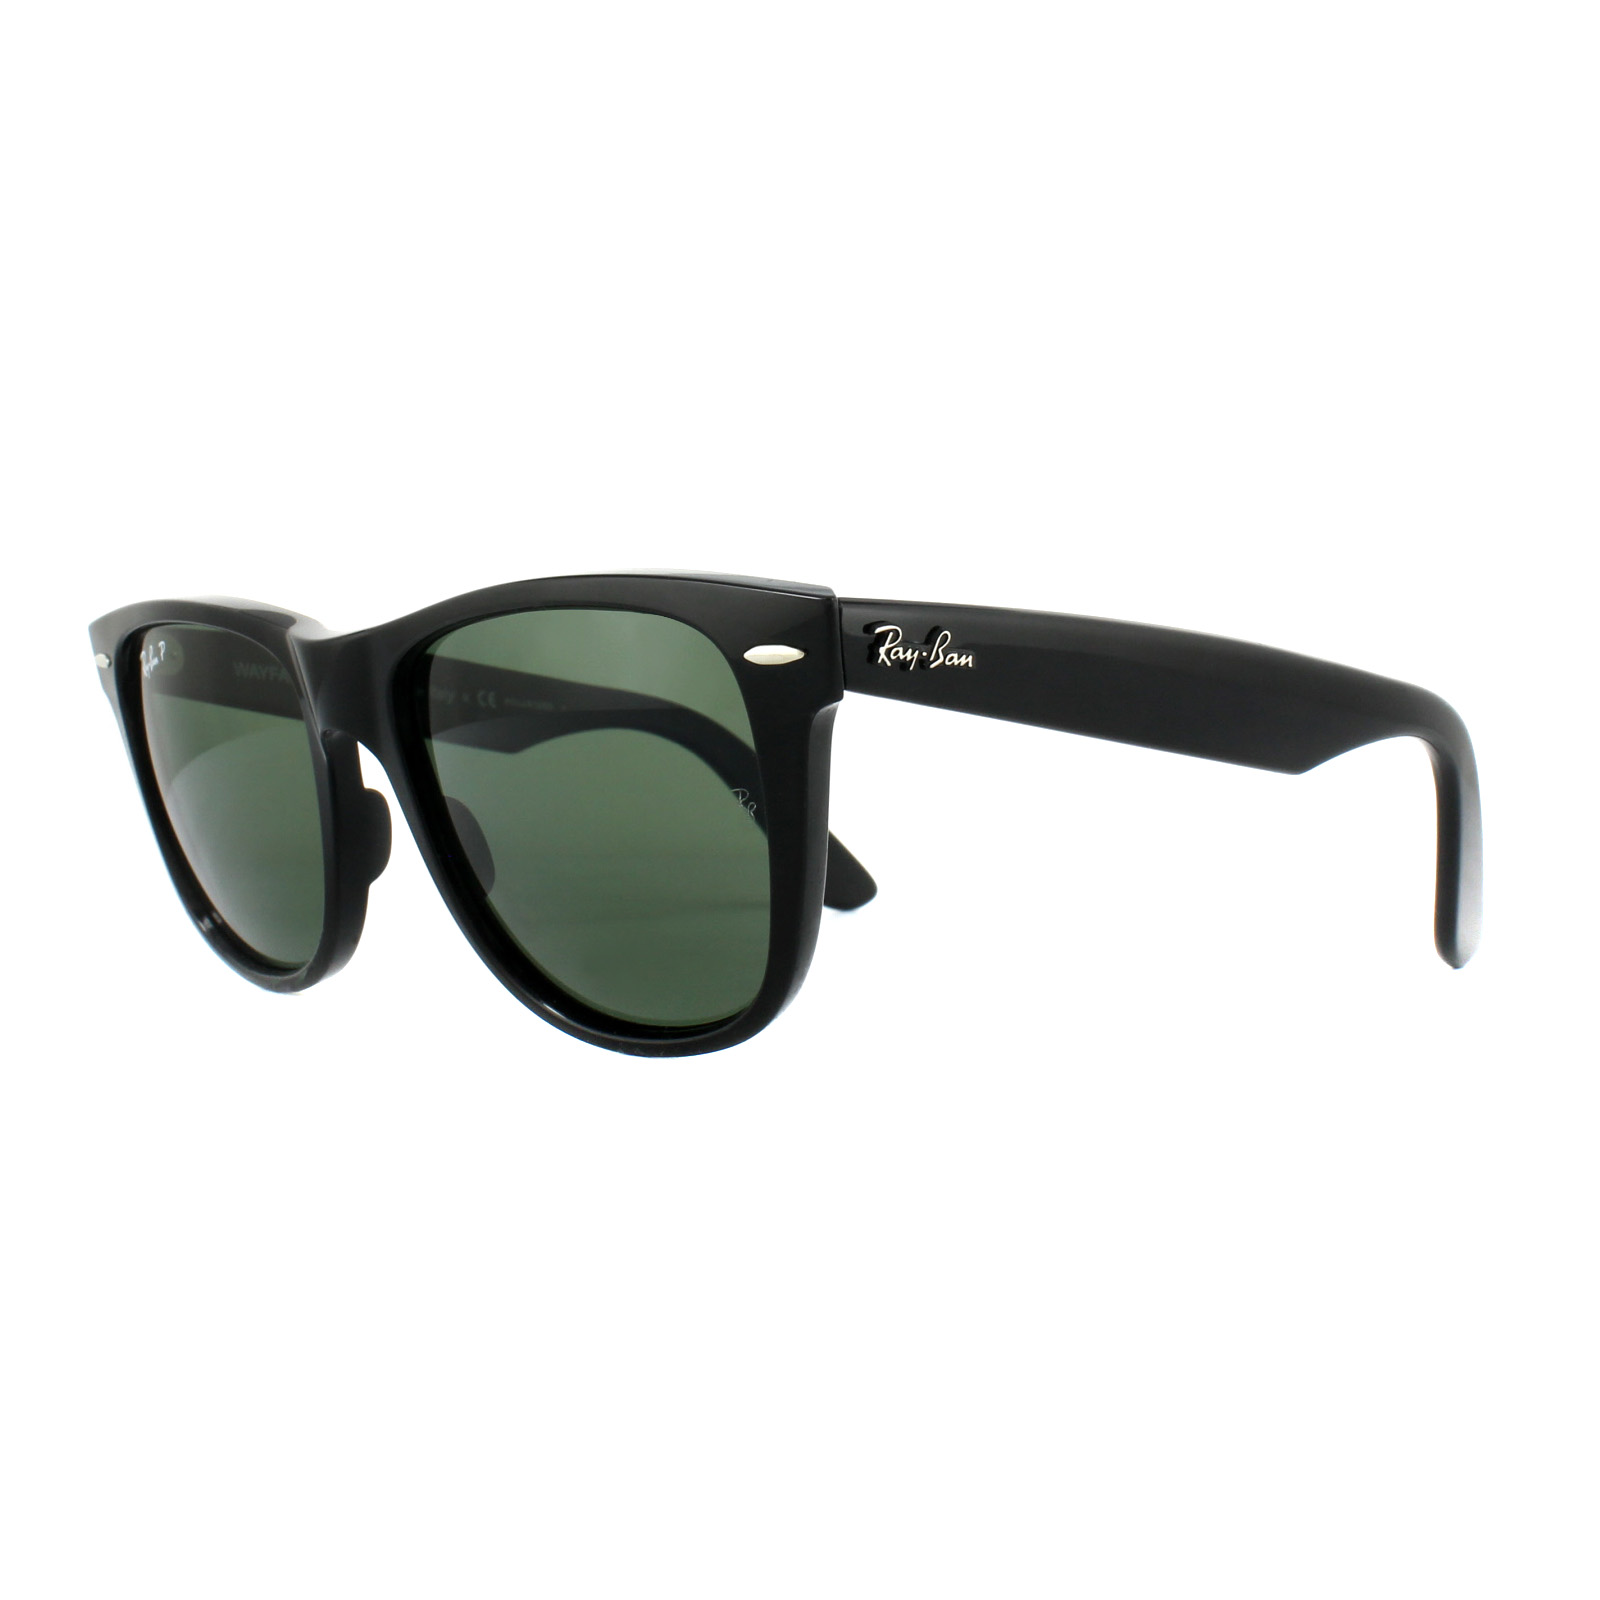 Sentinel Ray-Ban Sunglasses Wayfarer 2140 901 58 Black Green G-15 Polarized  Medium f3e2ab9c1a